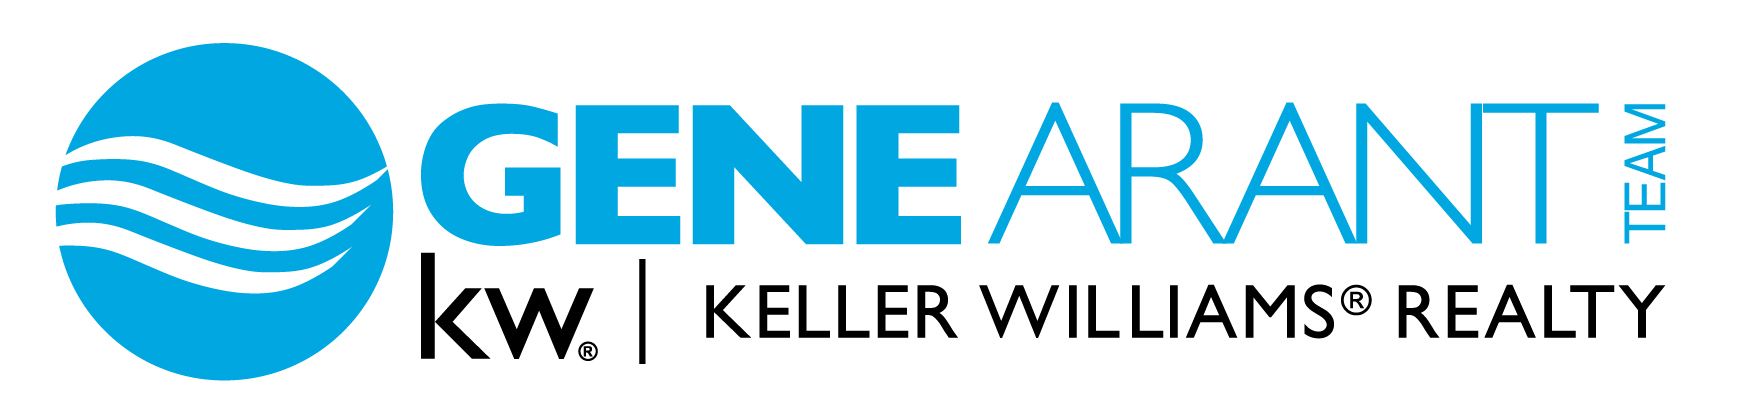 Gene Arant Team | Keller Williams Realty logo